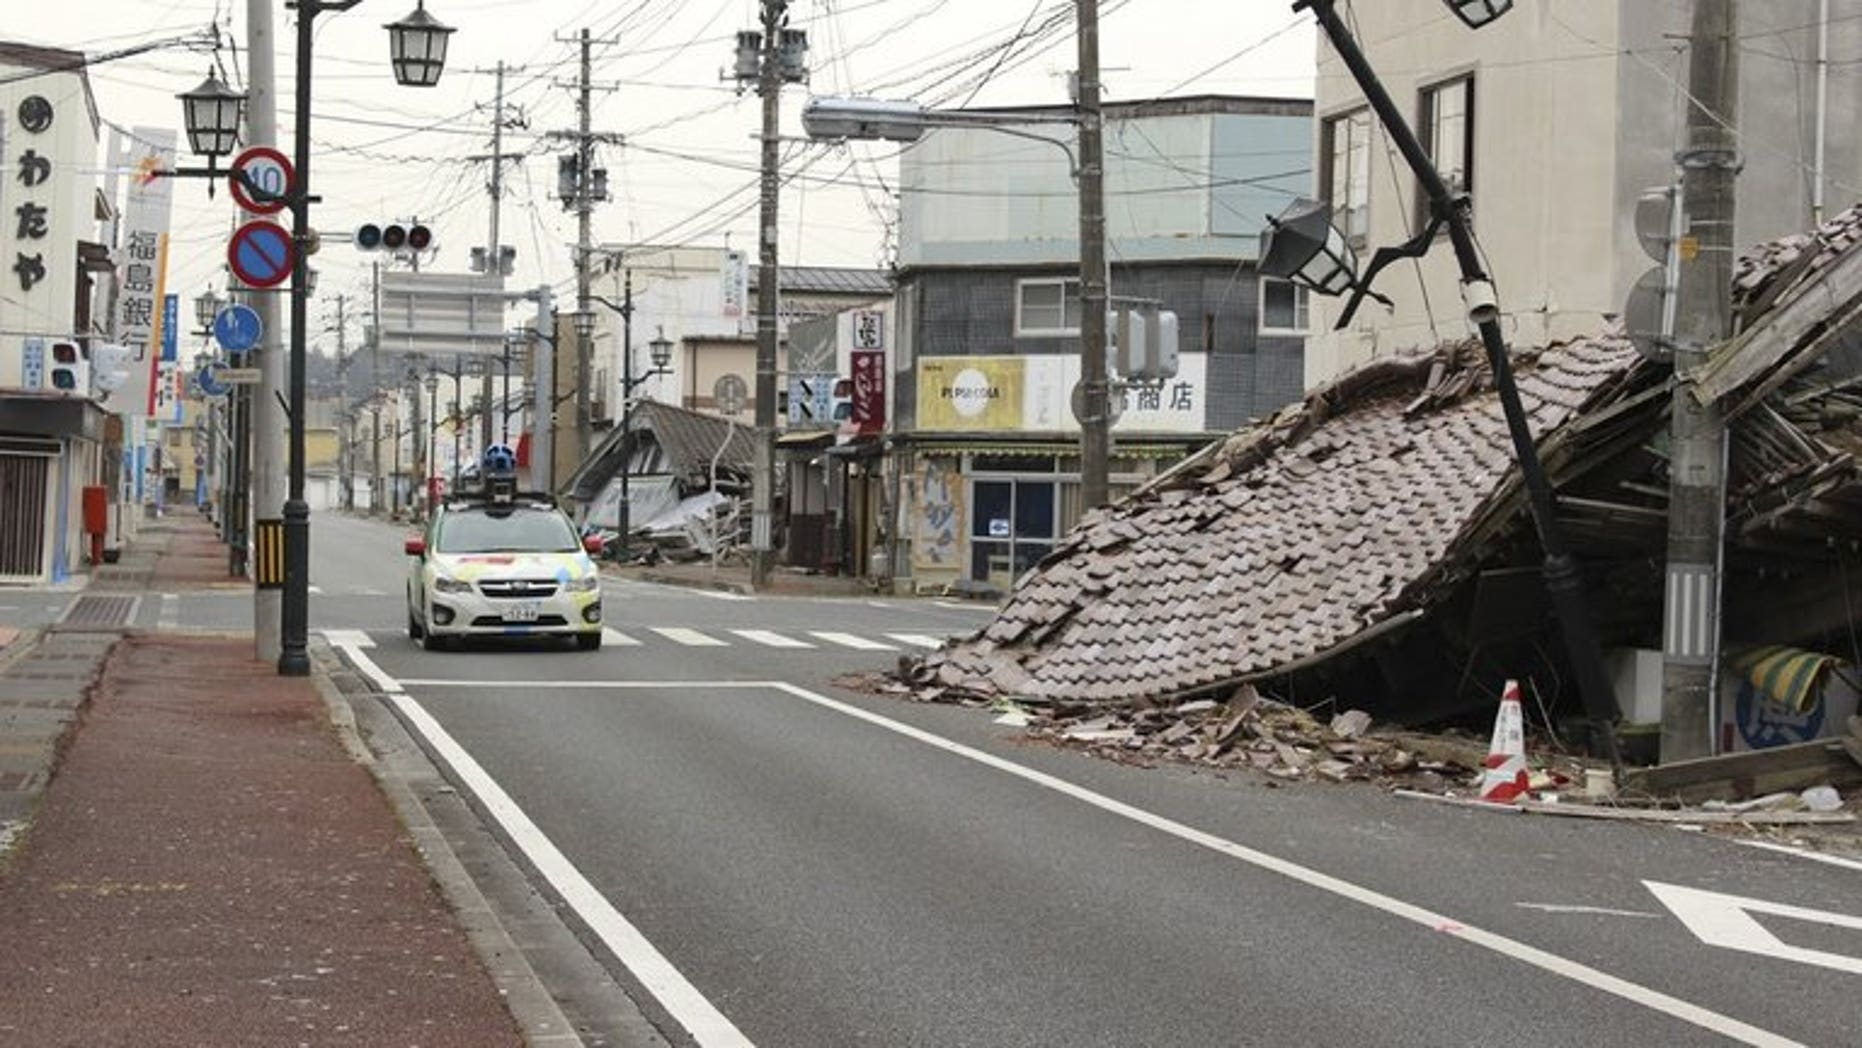 """A Google car mounted with a street view camera drives through a street in Namie, on March 28, 2013. namie -- a town abandoned after the Fukushima nuclear accident -- has protested Prime Minister Shinzo Abe's global promise that the situation of the crippled plant was """"under control""""."""